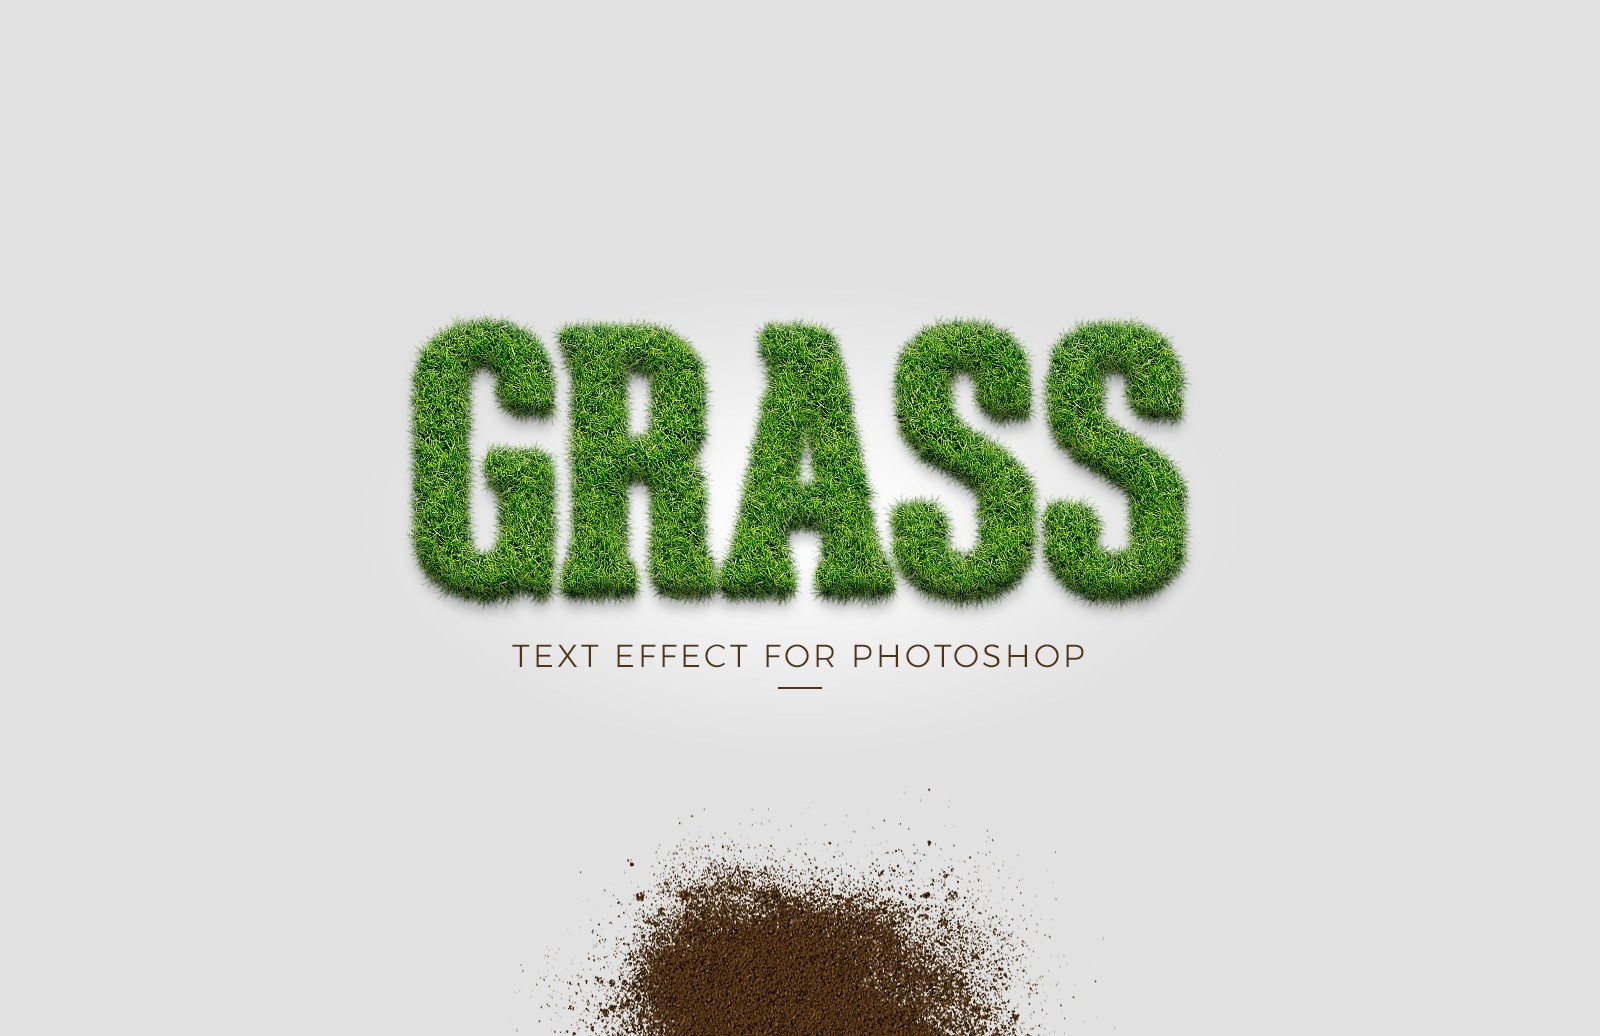 Grass Text Effect for Photoshop